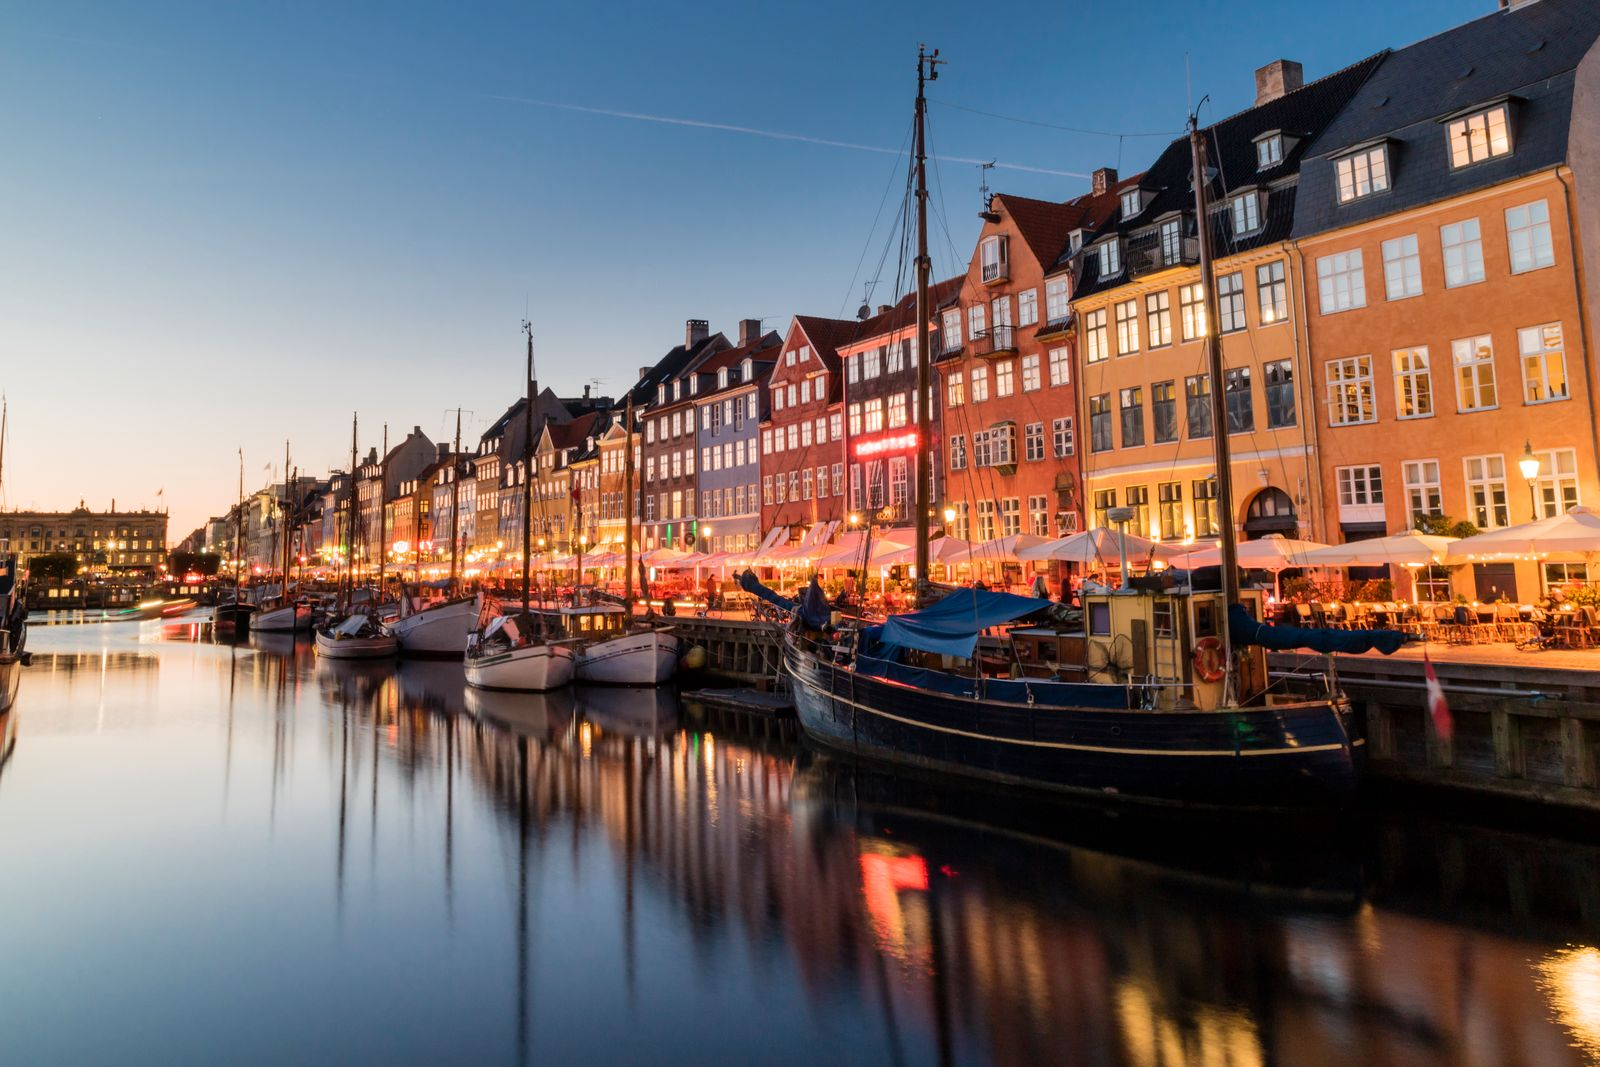 Nyhavn water front canal and touristic street at night